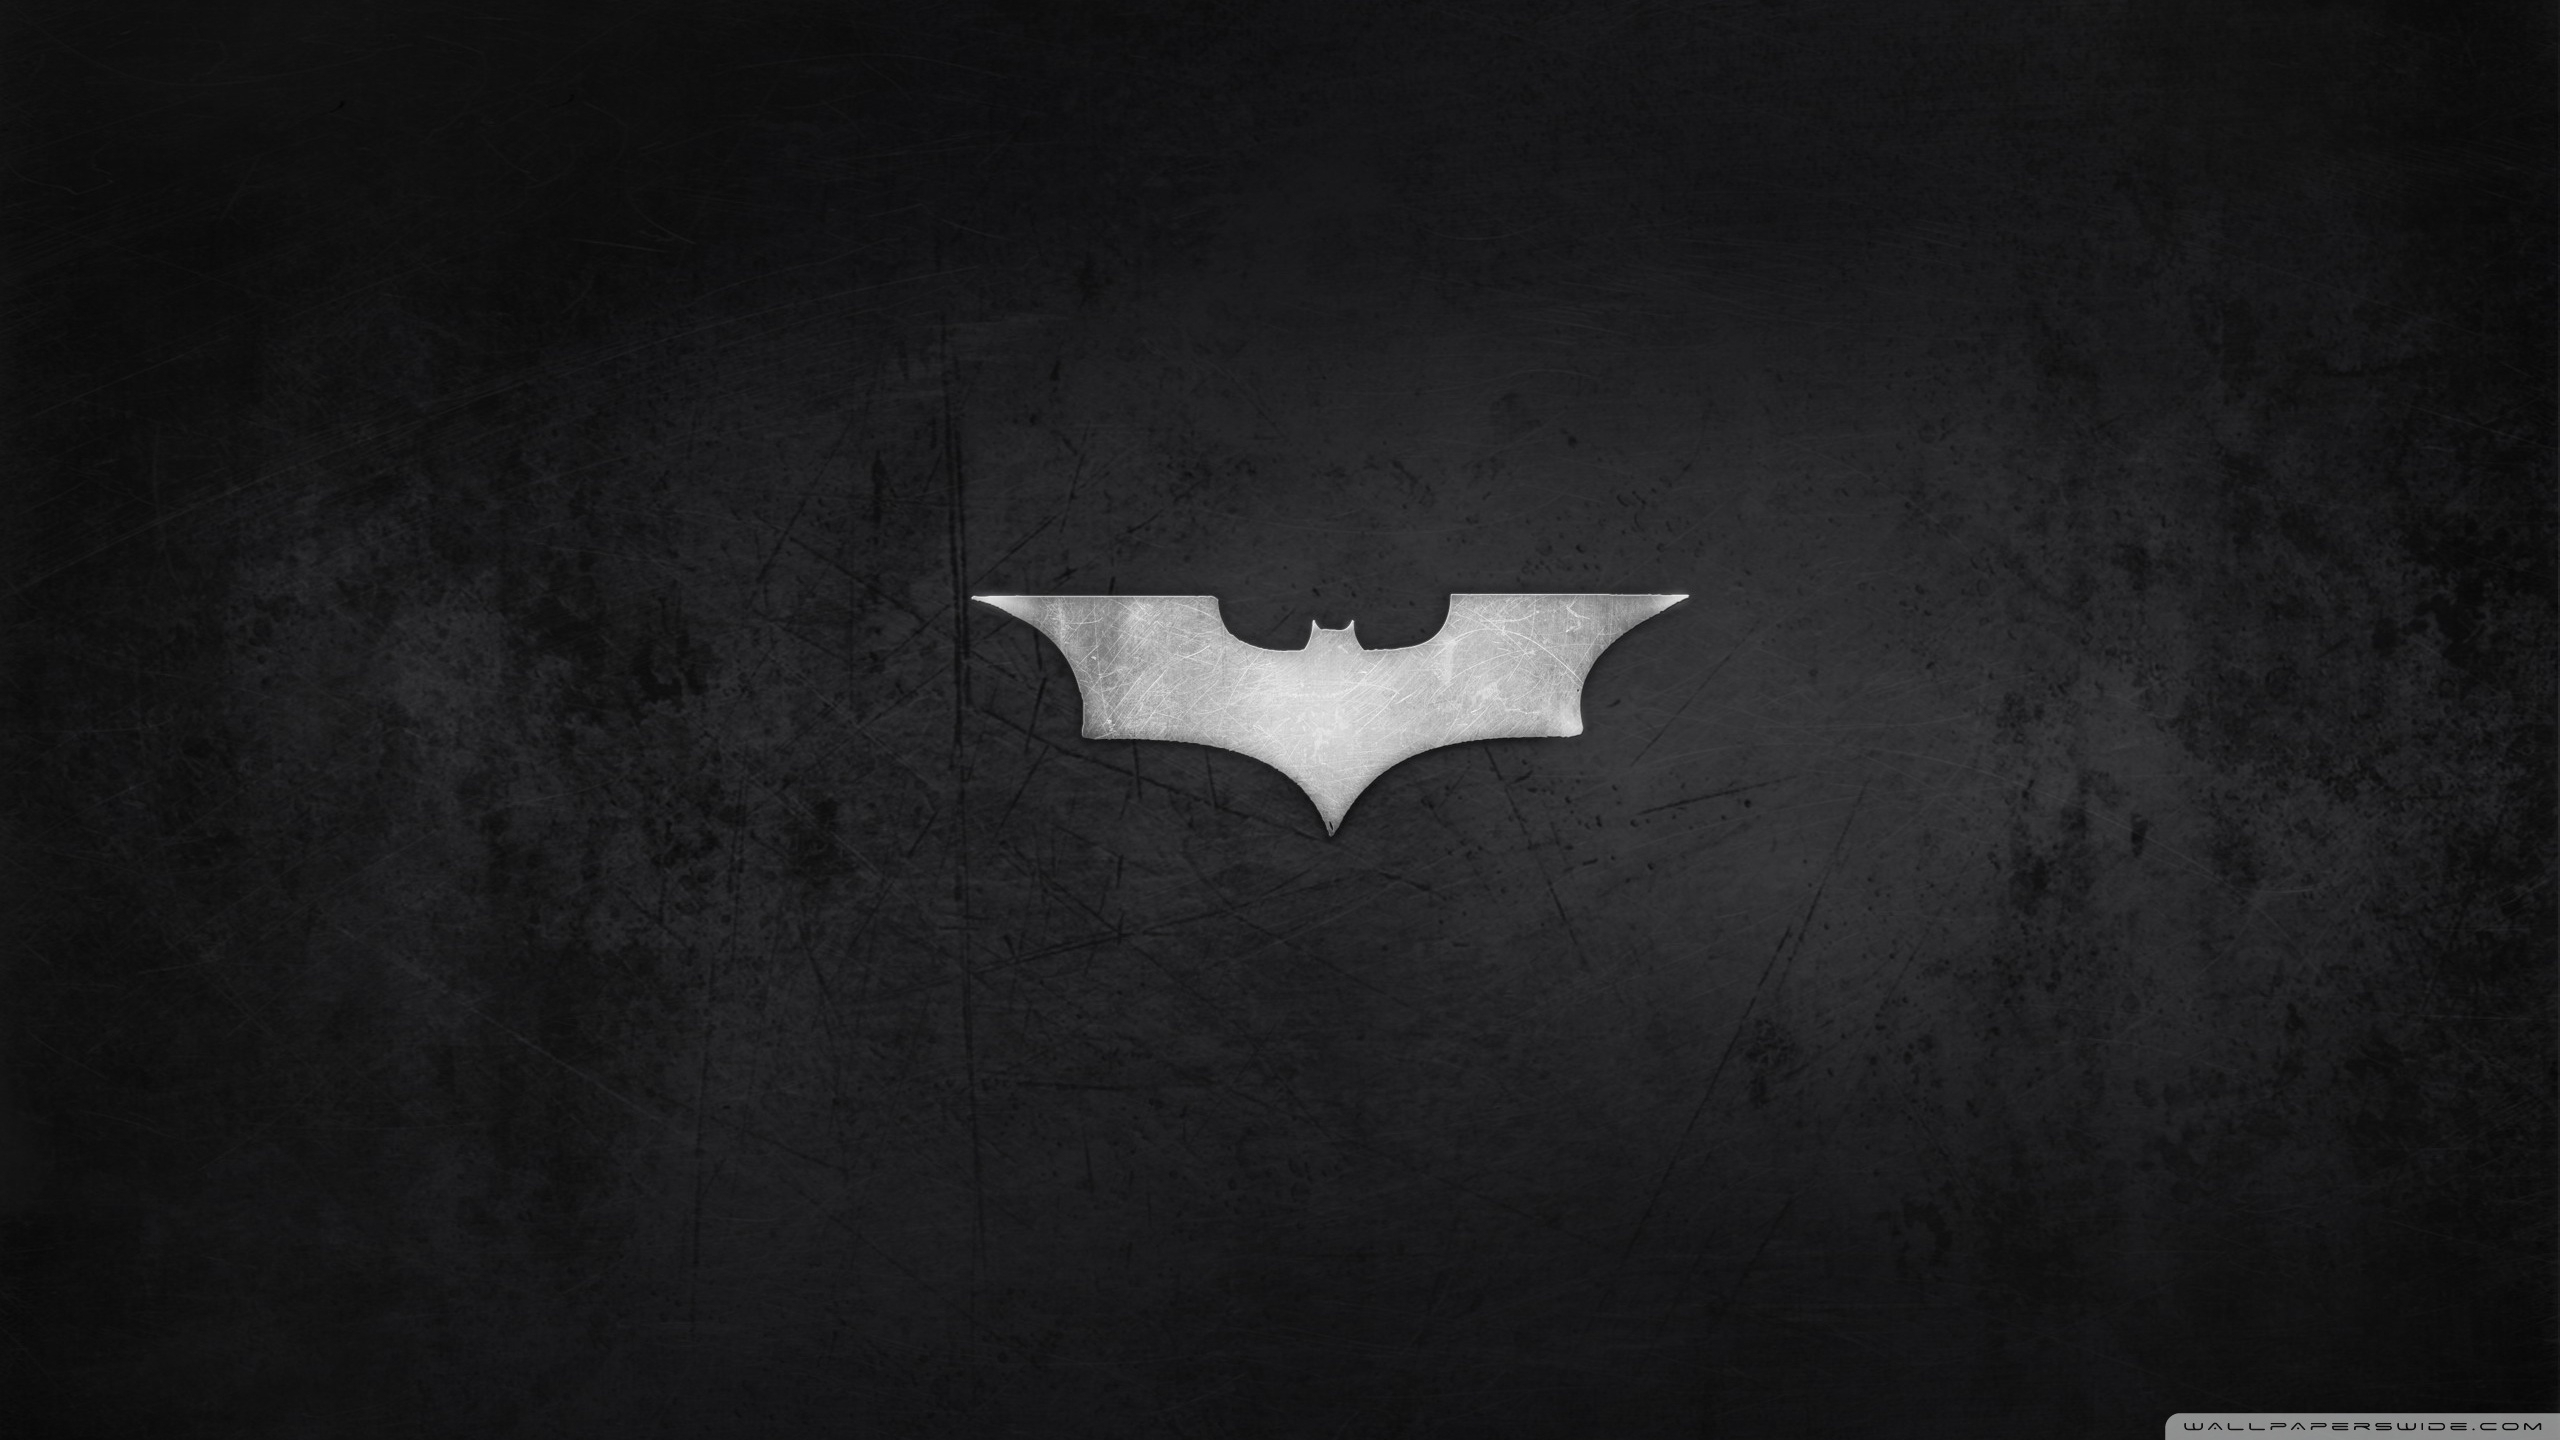 batman logo ❤ 4k hd desktop wallpaper for 4k ultra hd tv • dual